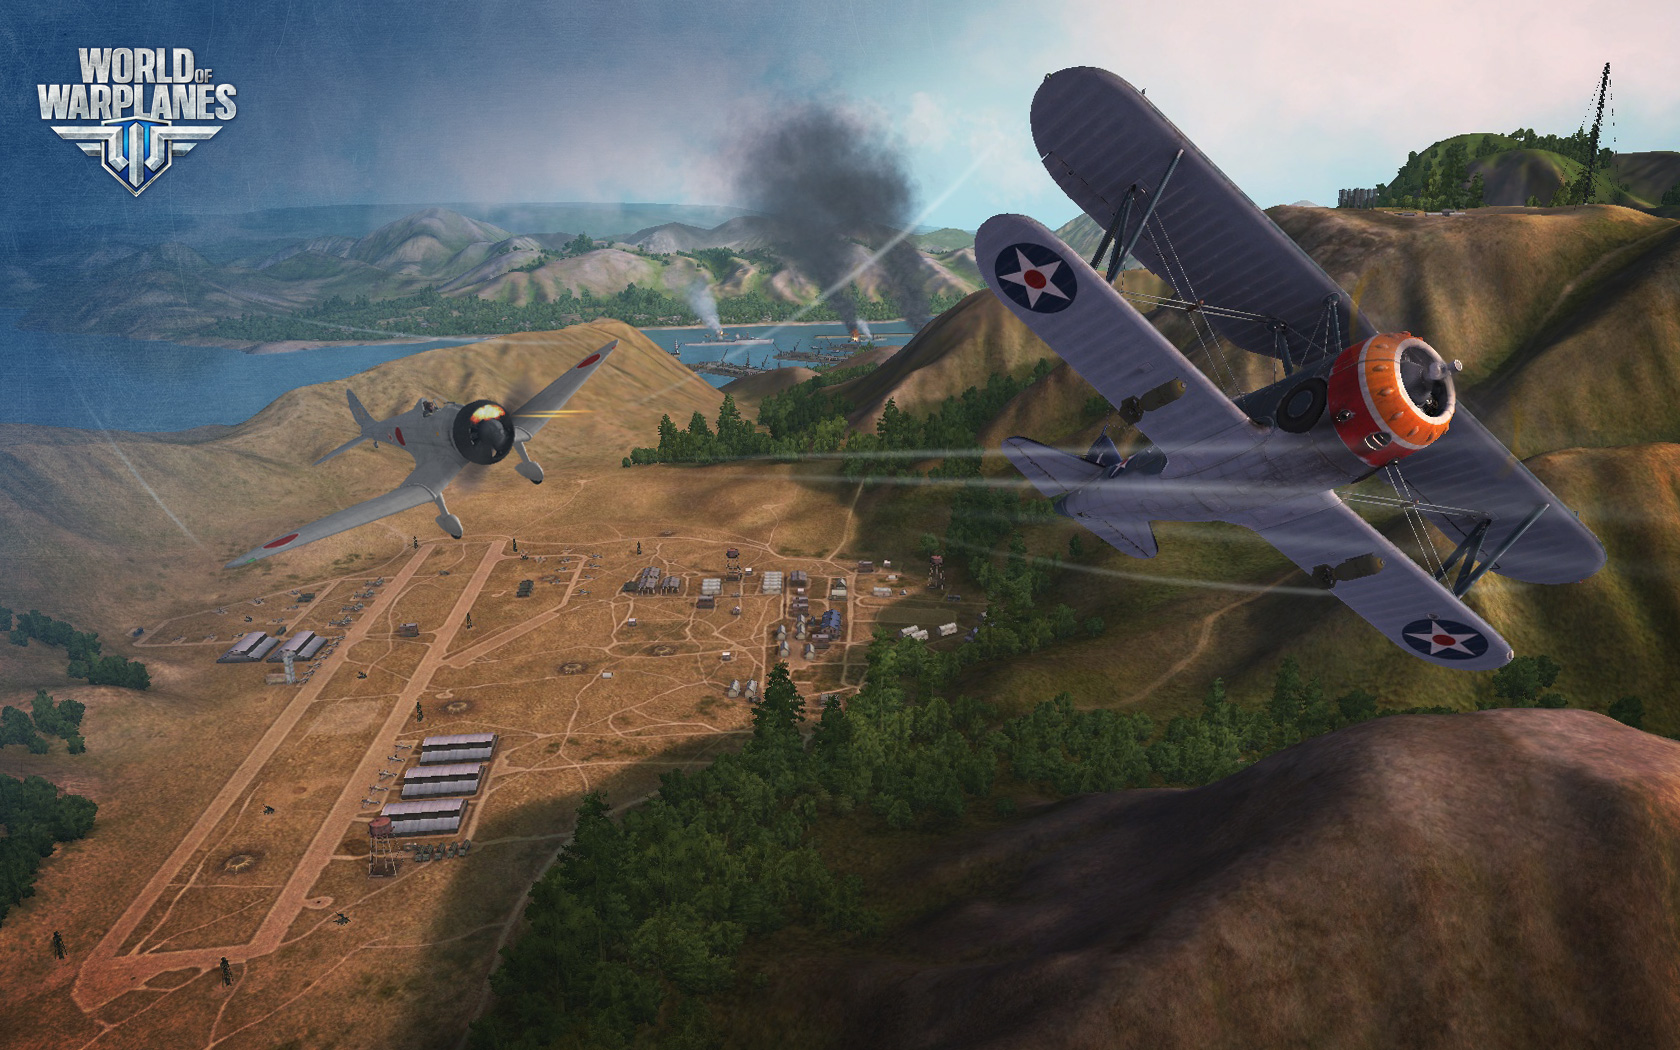 World_of_Warplanes_Screens_Image_06